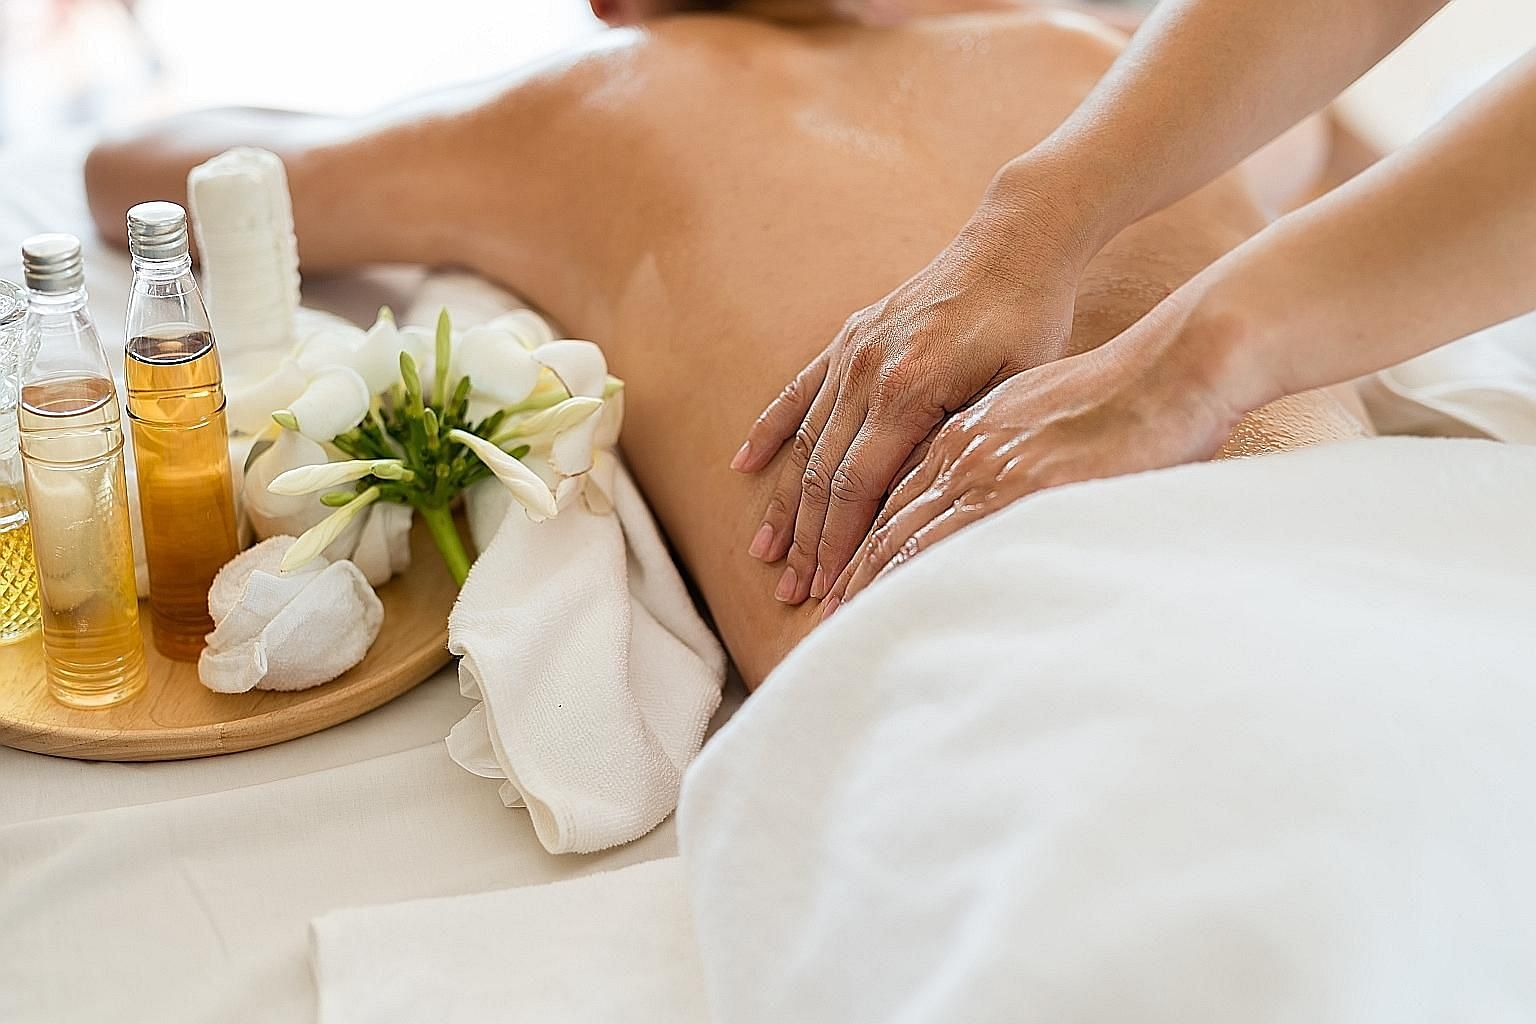 Wellness and beauty services, such as massages, were suspended during the circuit breaker, but have since resumed. A check with several establishments shows demand for such treatments is slowly but steadily picking up, though not back to pre-Covid-19